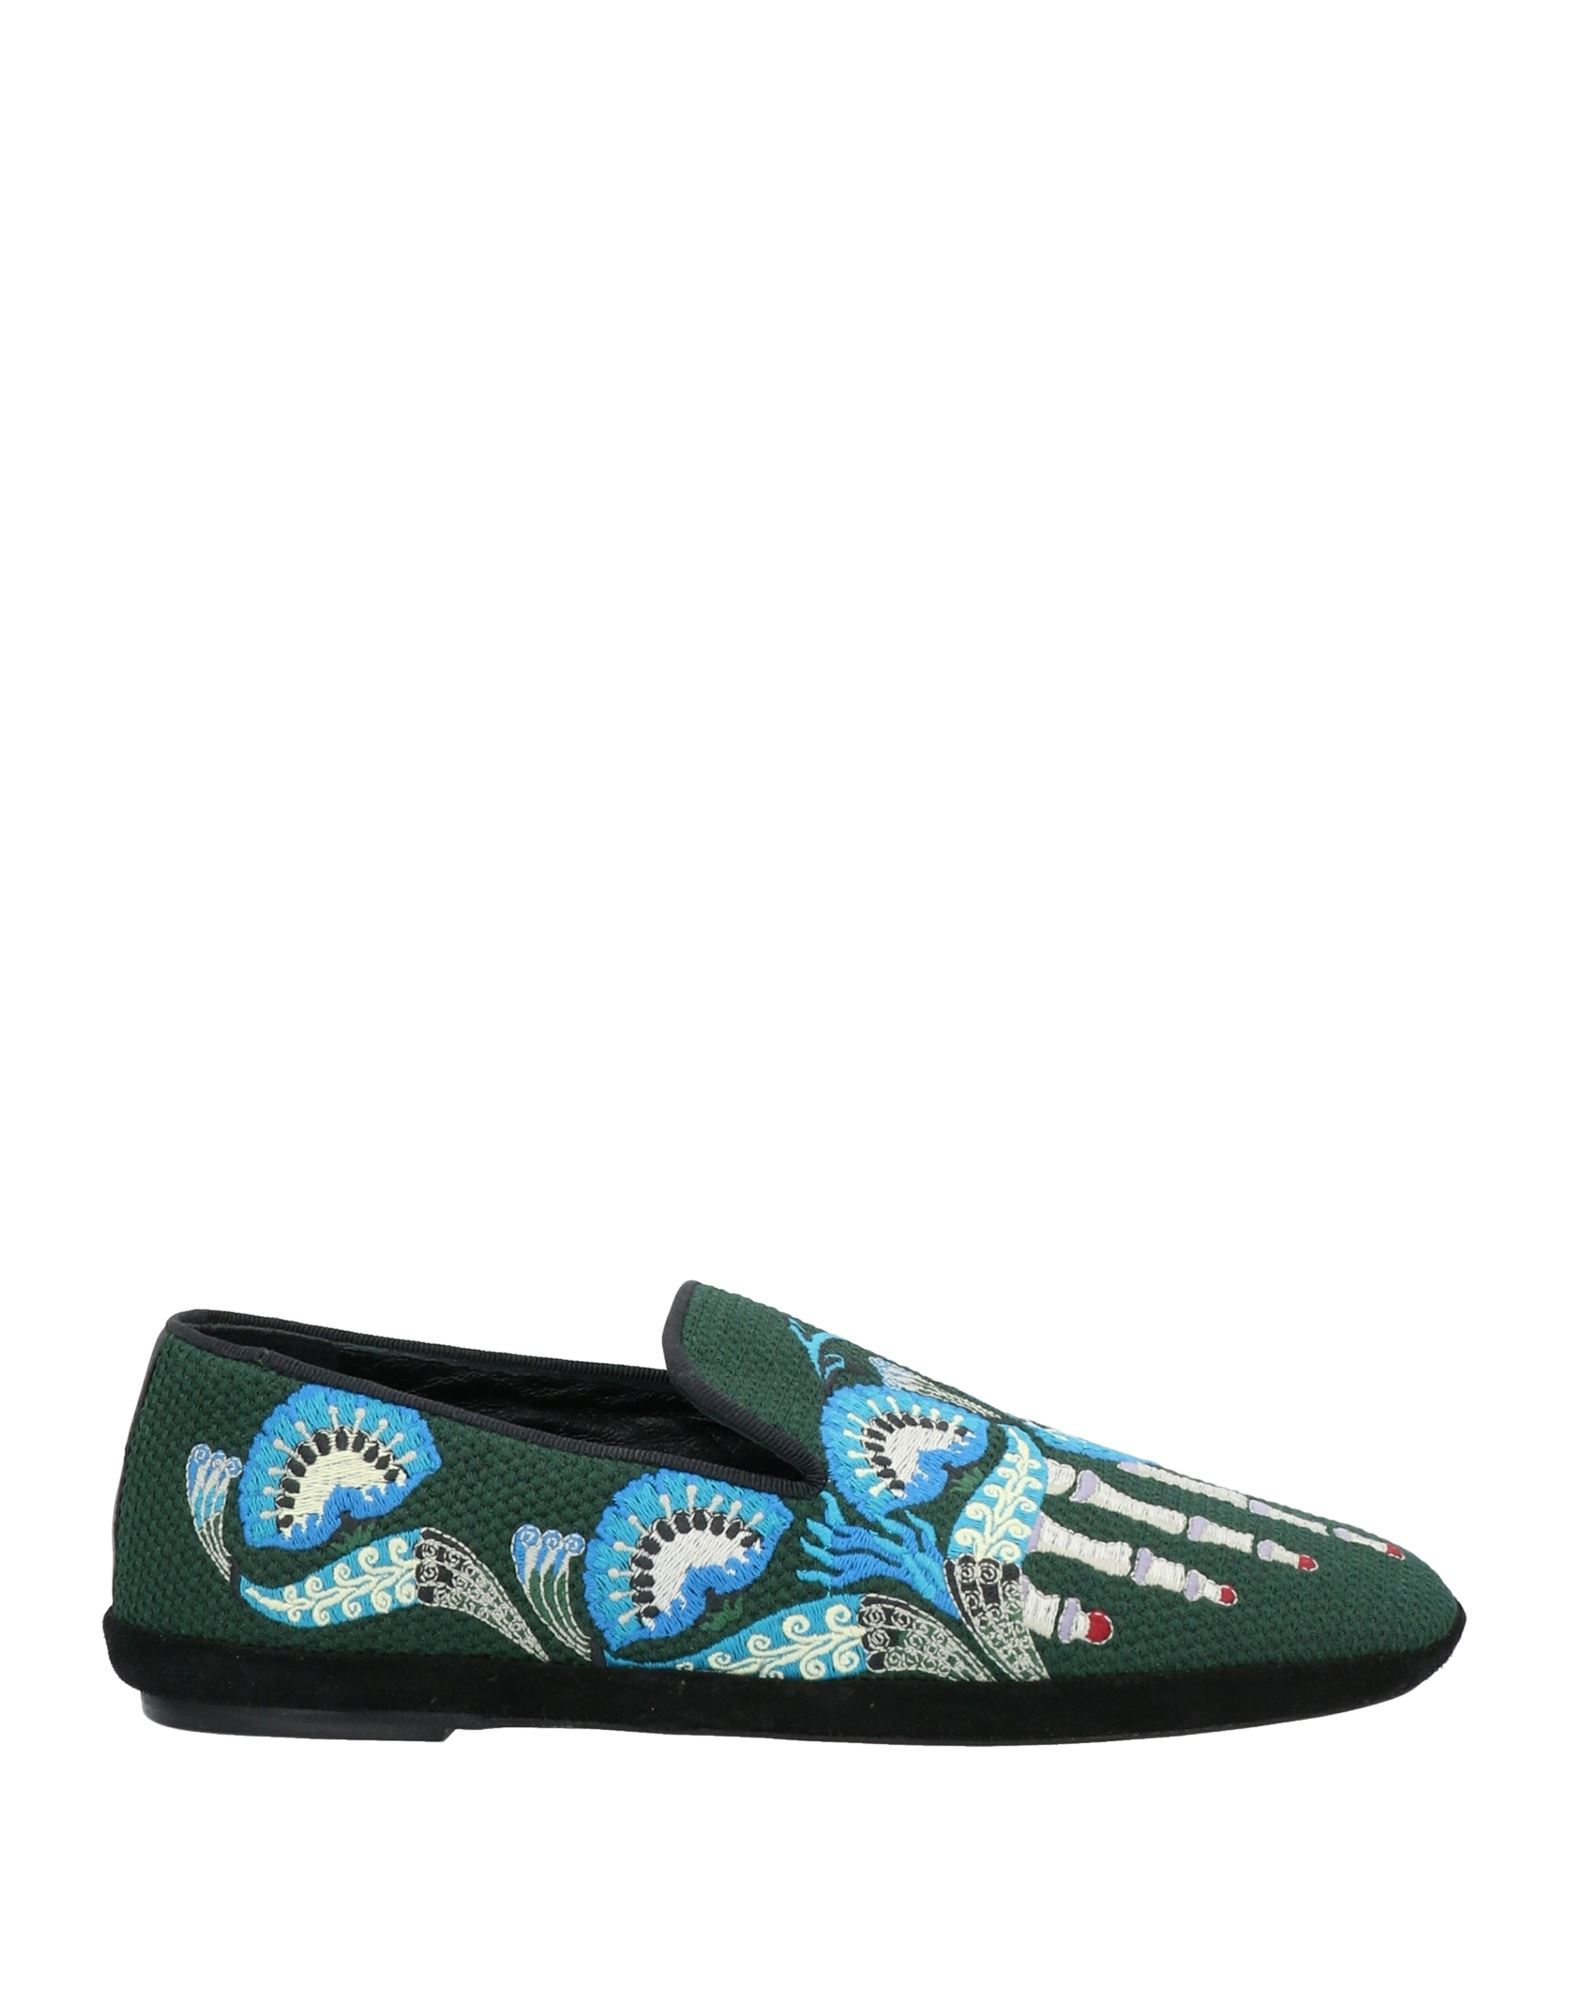 LOEWE Ballet flats. canvas, embroidered detailing, multicolor pattern, round toeline, flat, leather lining, leather sole, contains non-textile parts of animal origin. Textile fibers